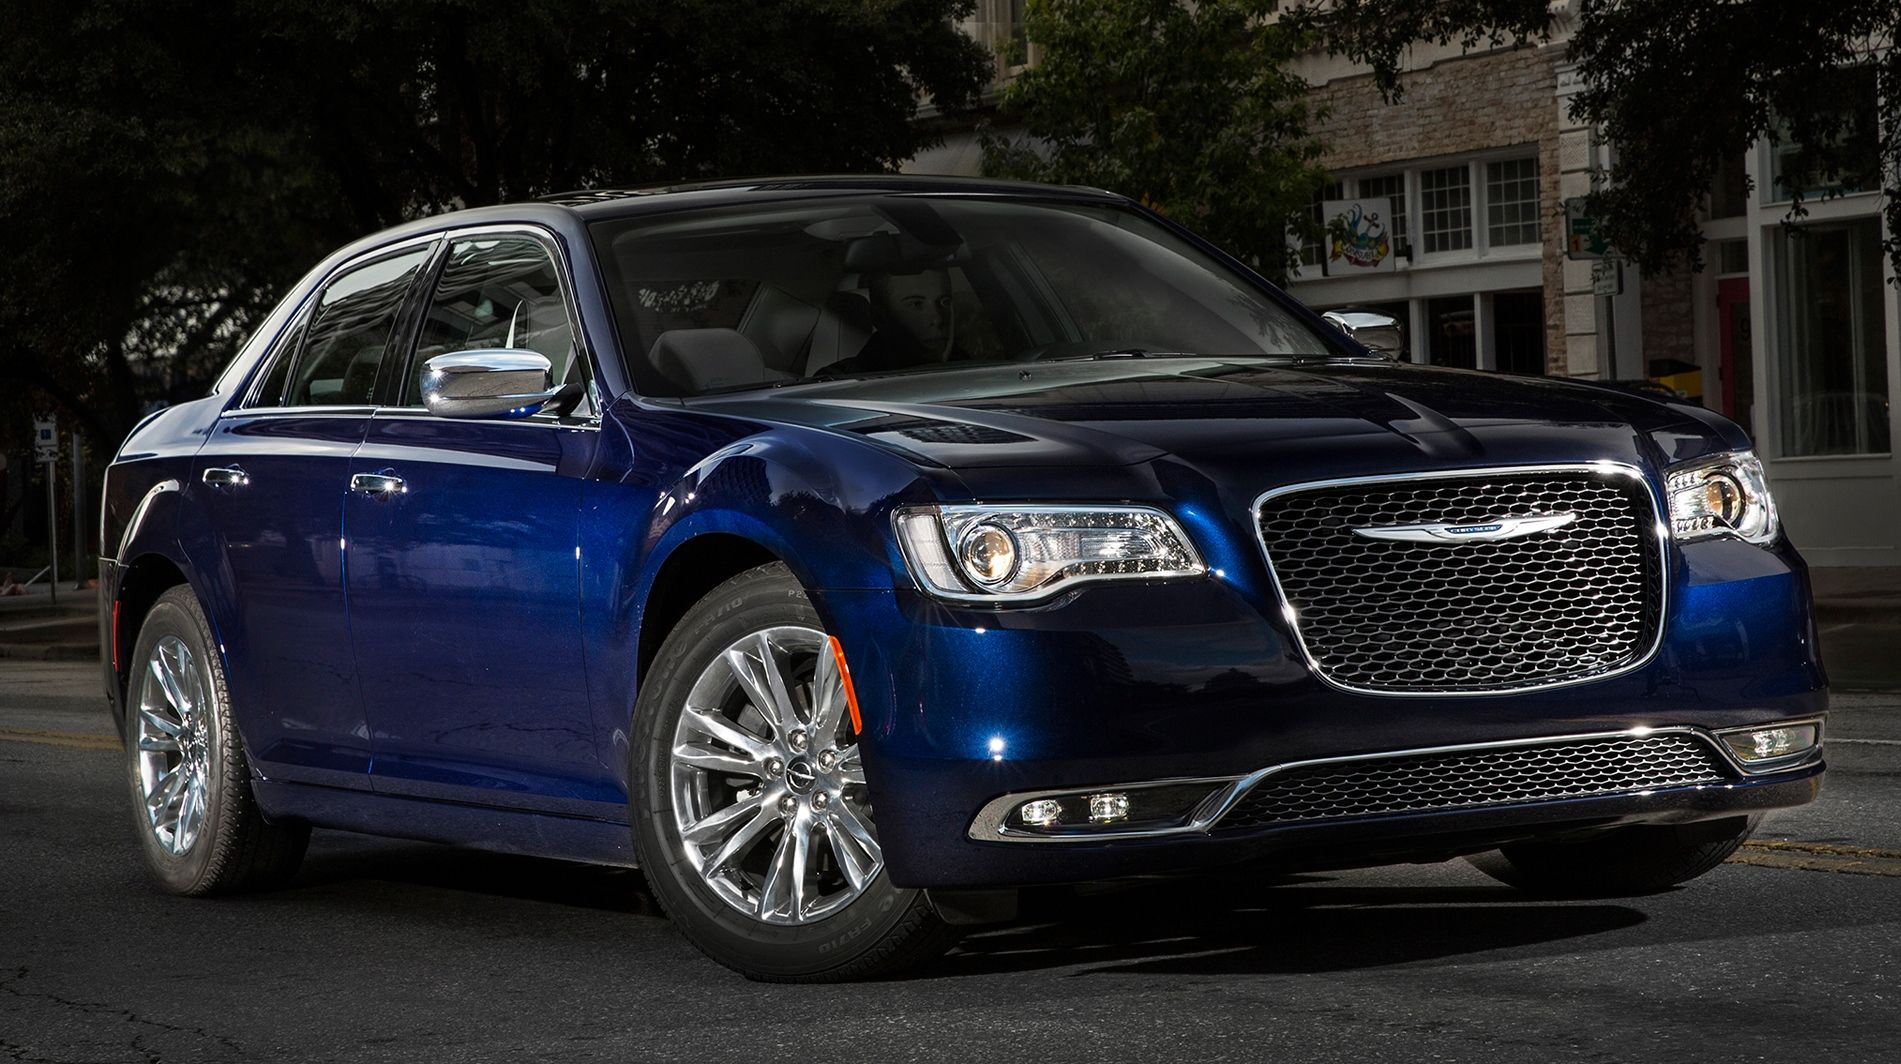 2018 Chrysler 300 Srt8 Price Interior Mpg With Images